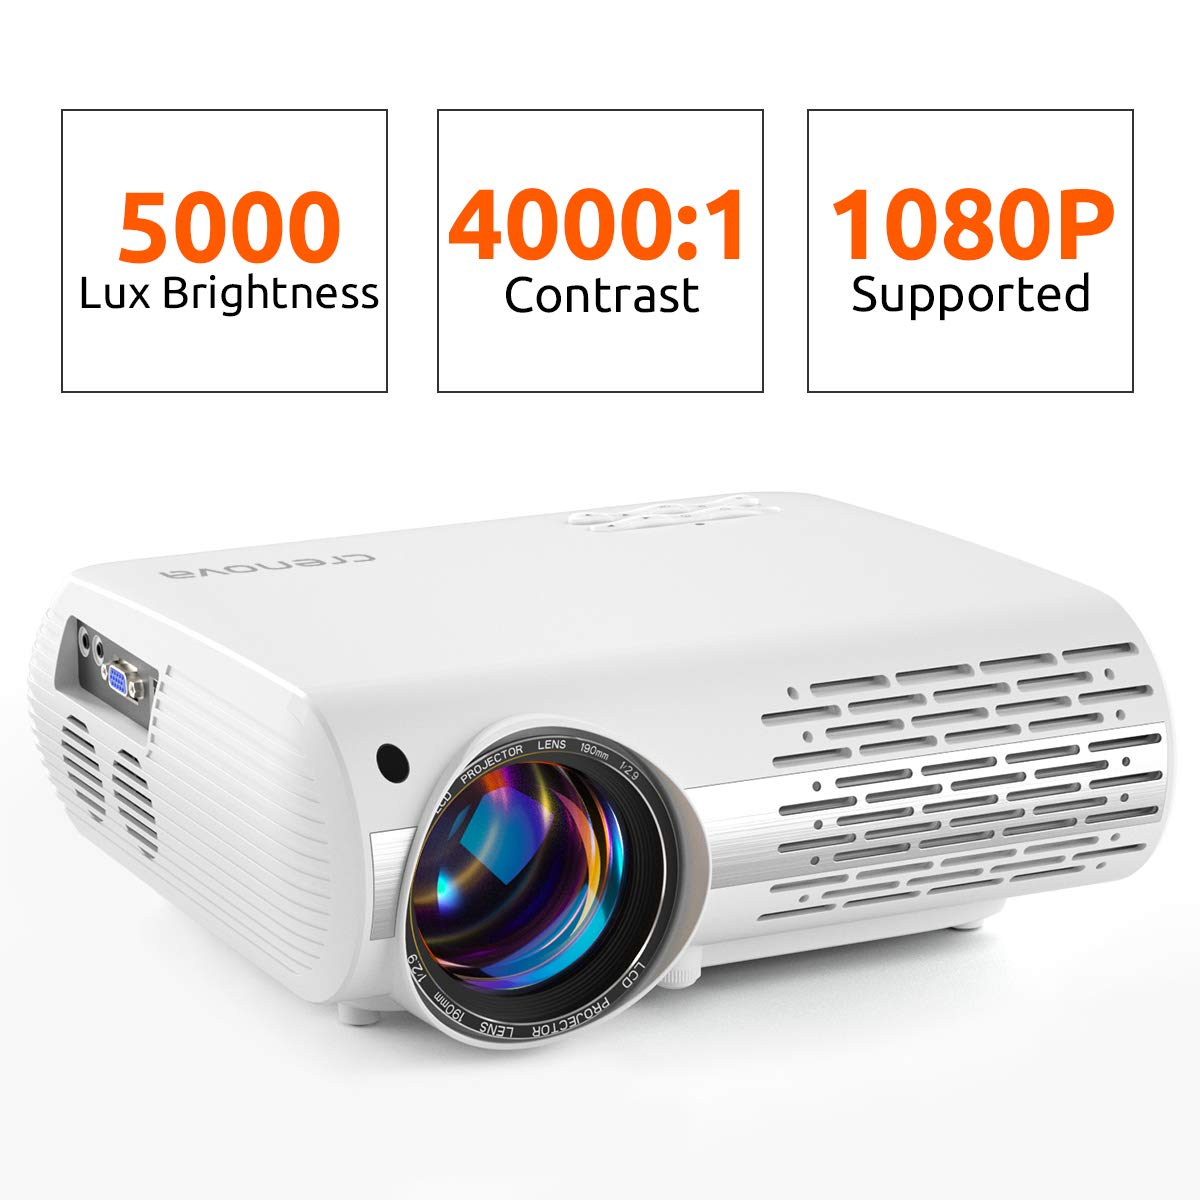 Crenova Video Projector, 5000 Lux Home Movie Projector(550 ANSI), 200'' Display HD LED Projector 1080P Supported, Work with Phone, PC, Mac, TV Stick, PS4, HDMI, USB for Home Theater[2019 Upgraded] by Crenova